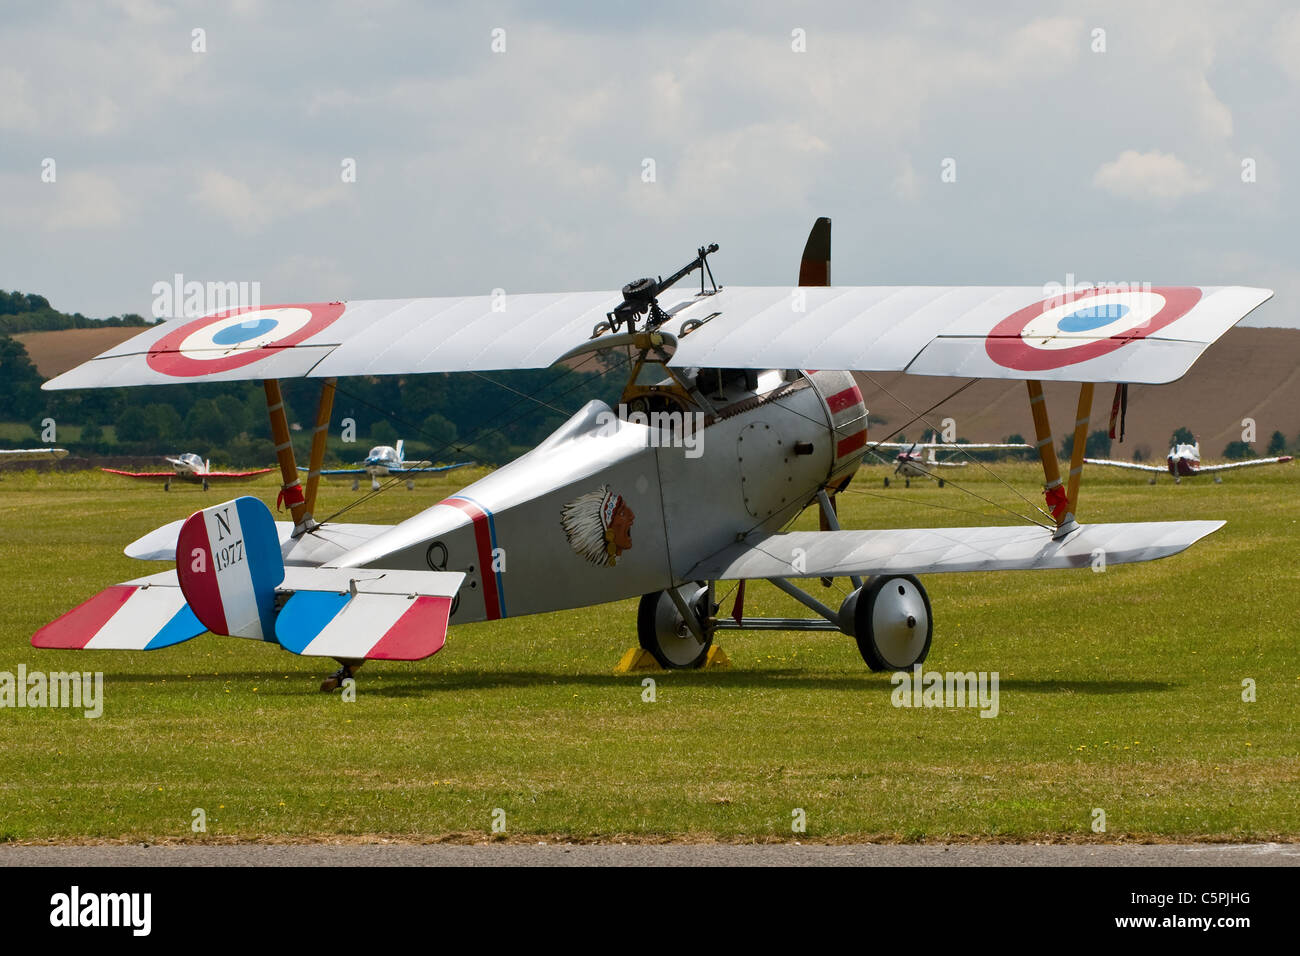 Nieuport 17 bi-plane N 1977 from the first World war - Stock Image